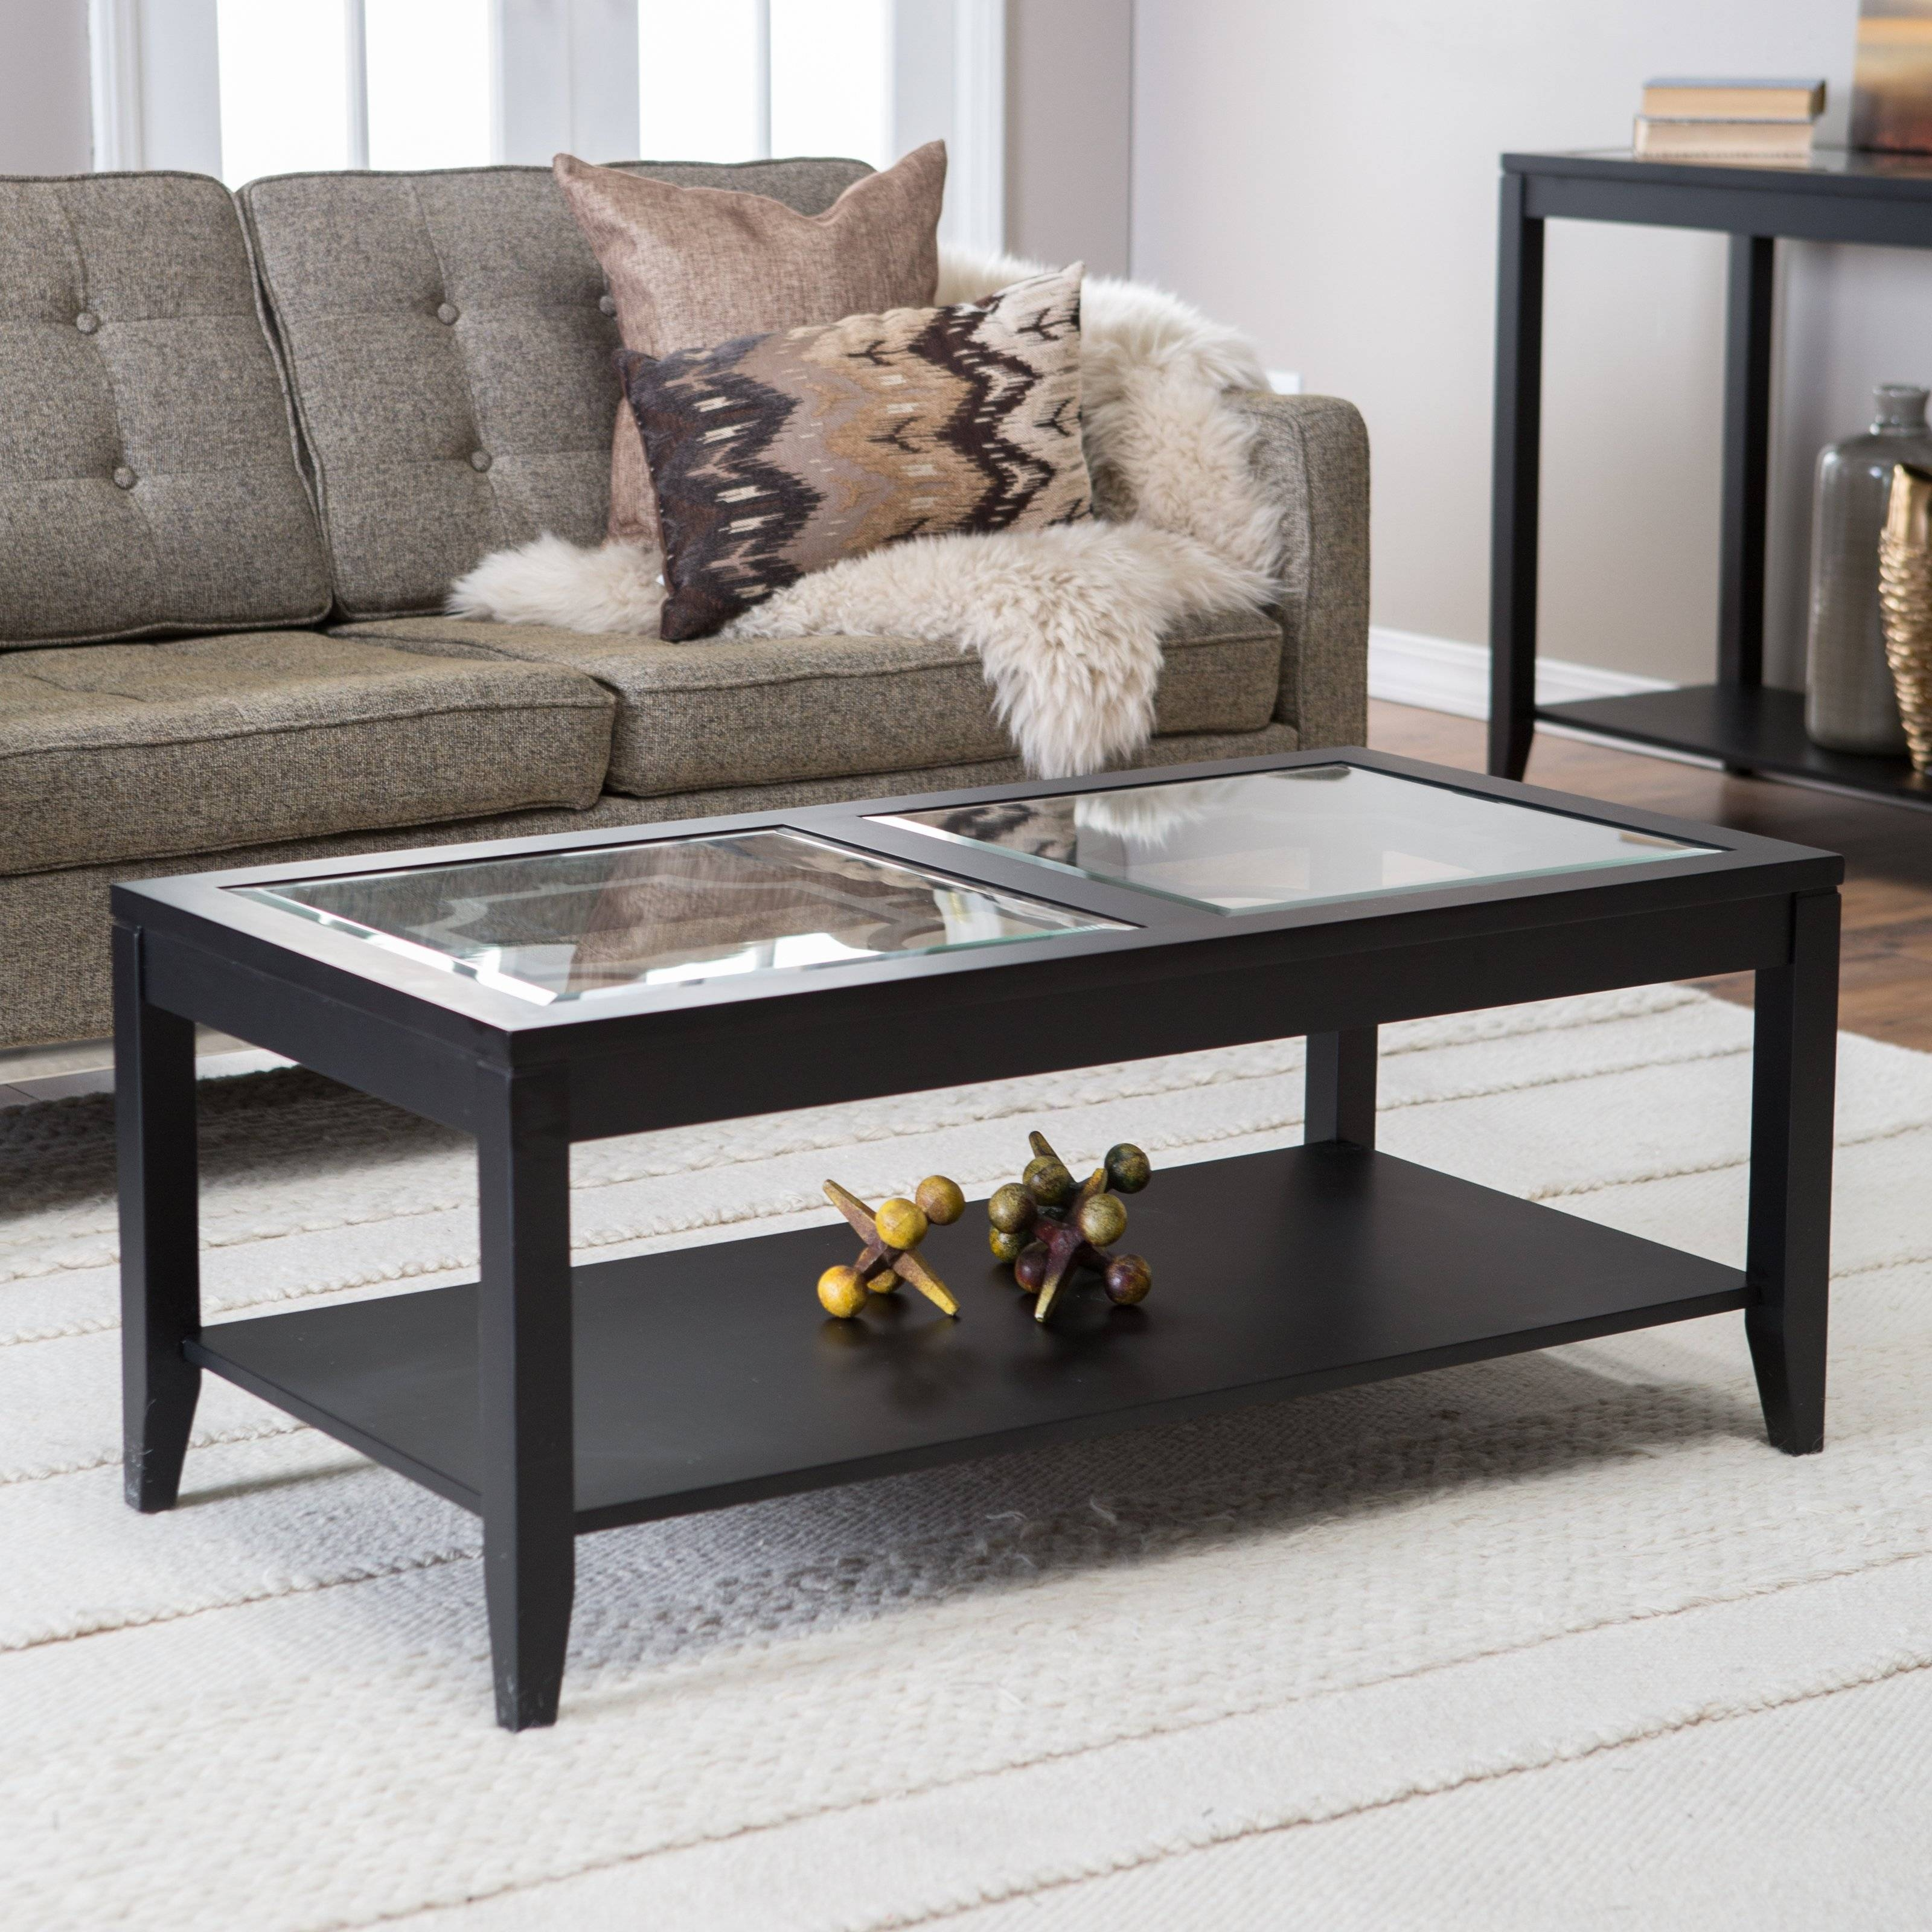 Hodedah Glass Rectangle Coffee Table, Black – Walmart With Large Rectangular Coffee Tables (View 15 of 30)